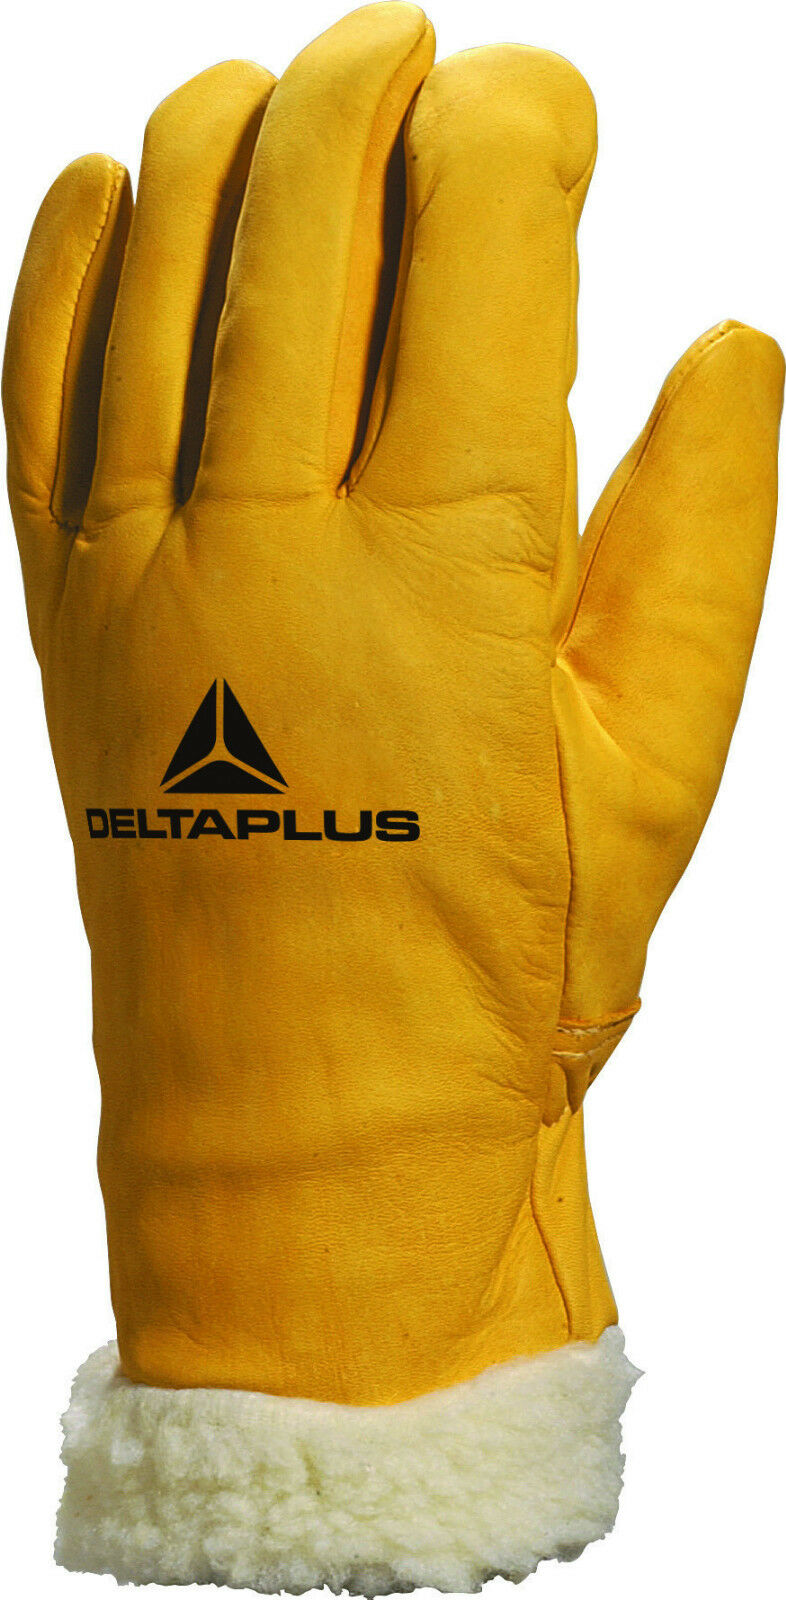 x2 Pairs Delta Plus Venitex FBF15 Mens Fur Lined Leather Winter Thermal Gloves